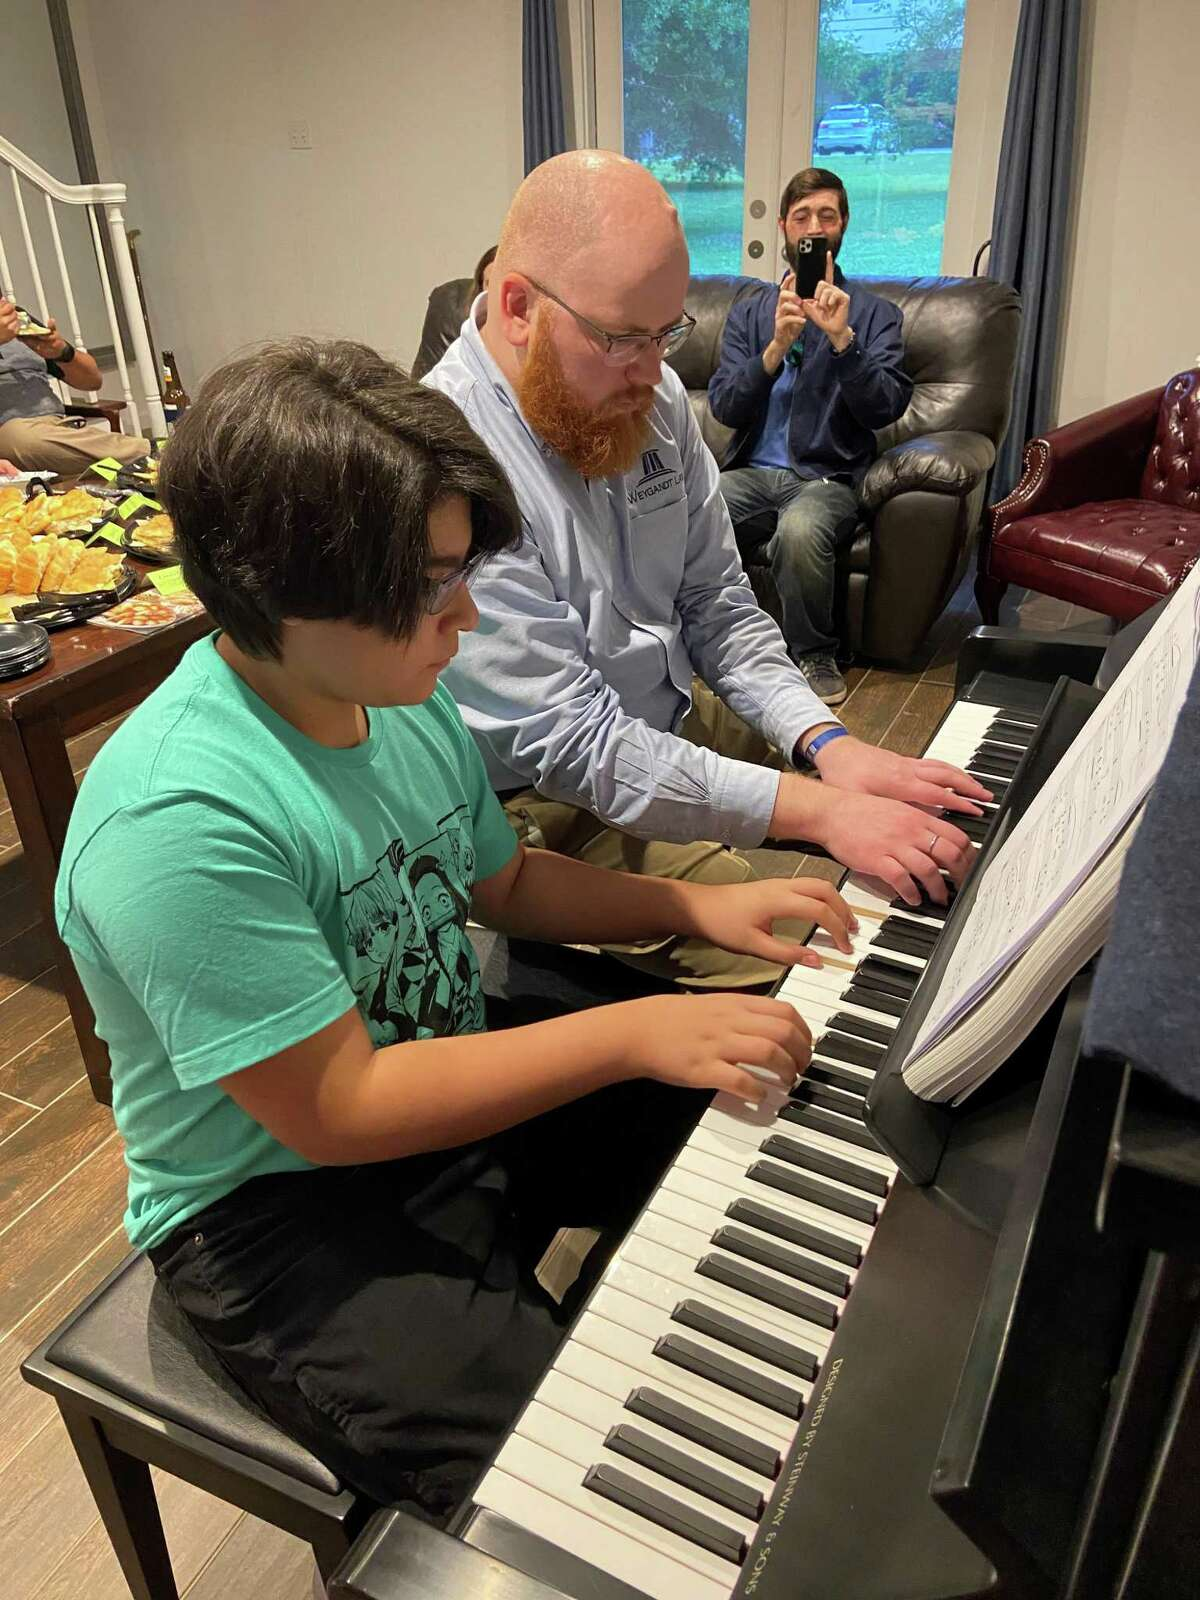 David W. Weygandt of Weygandt Law plays piano with a student showing that not all legal planning has to be a flat experience.